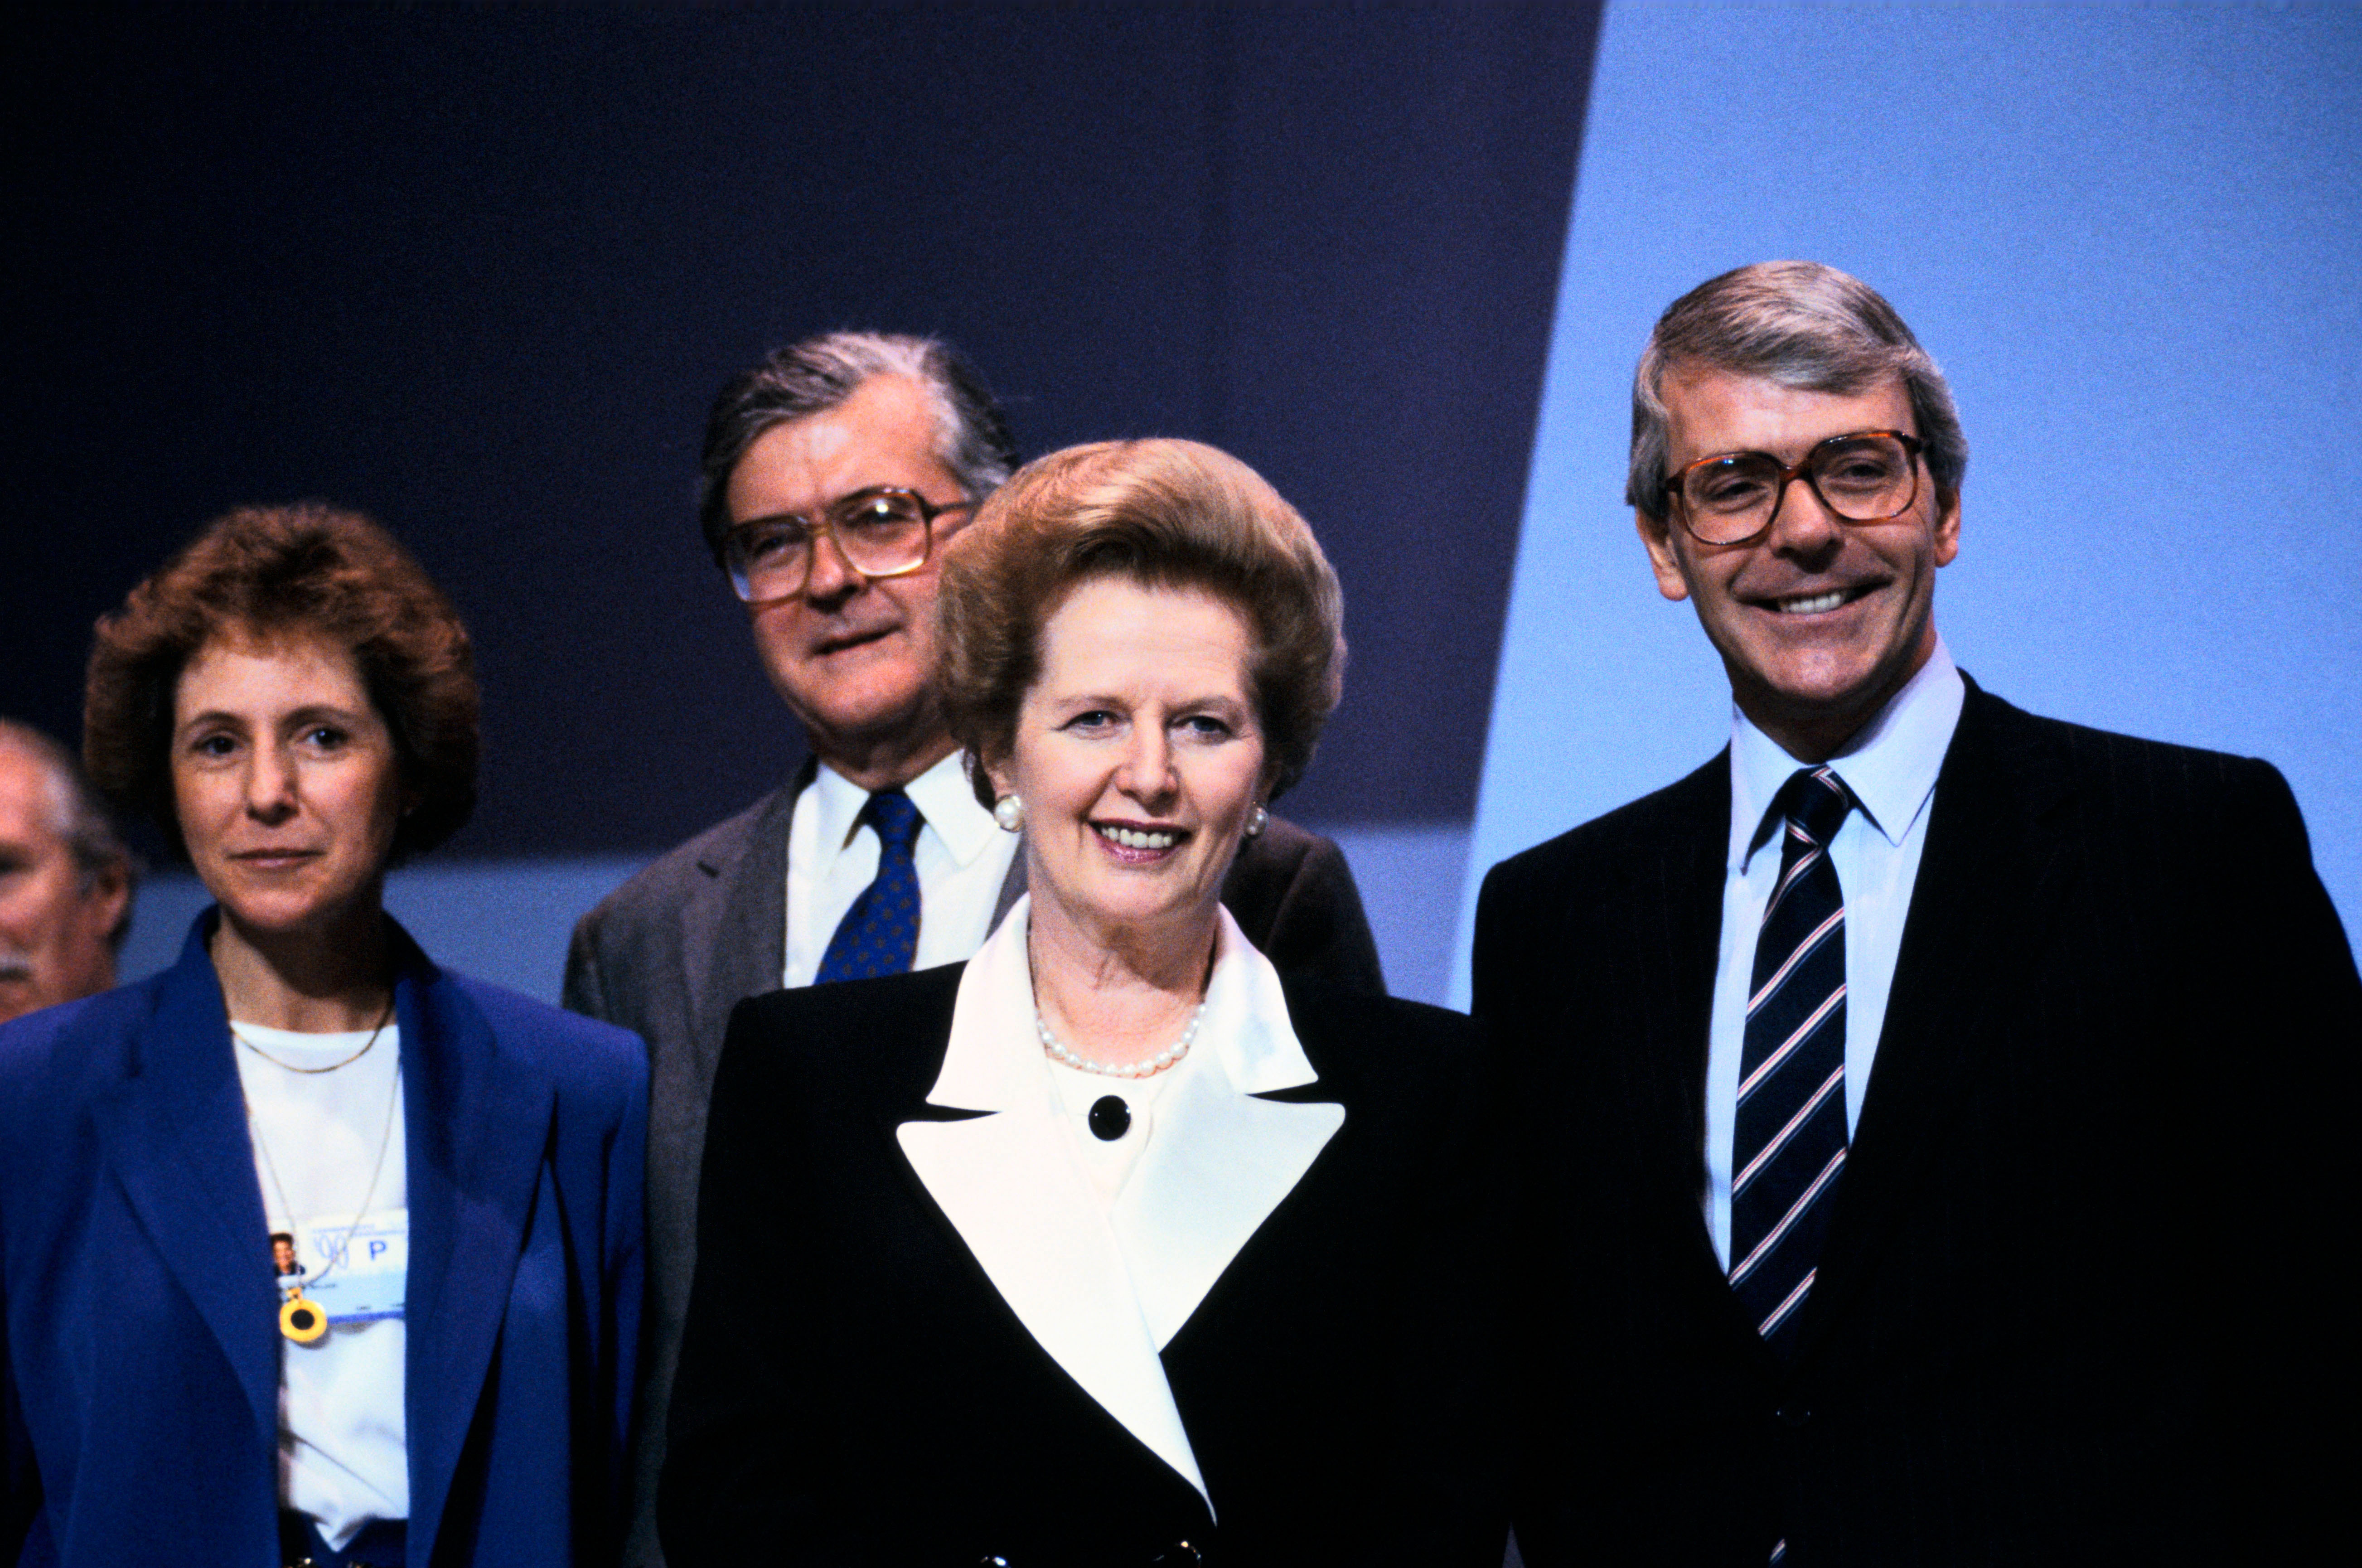 Revisiting the Maastricht Treaty